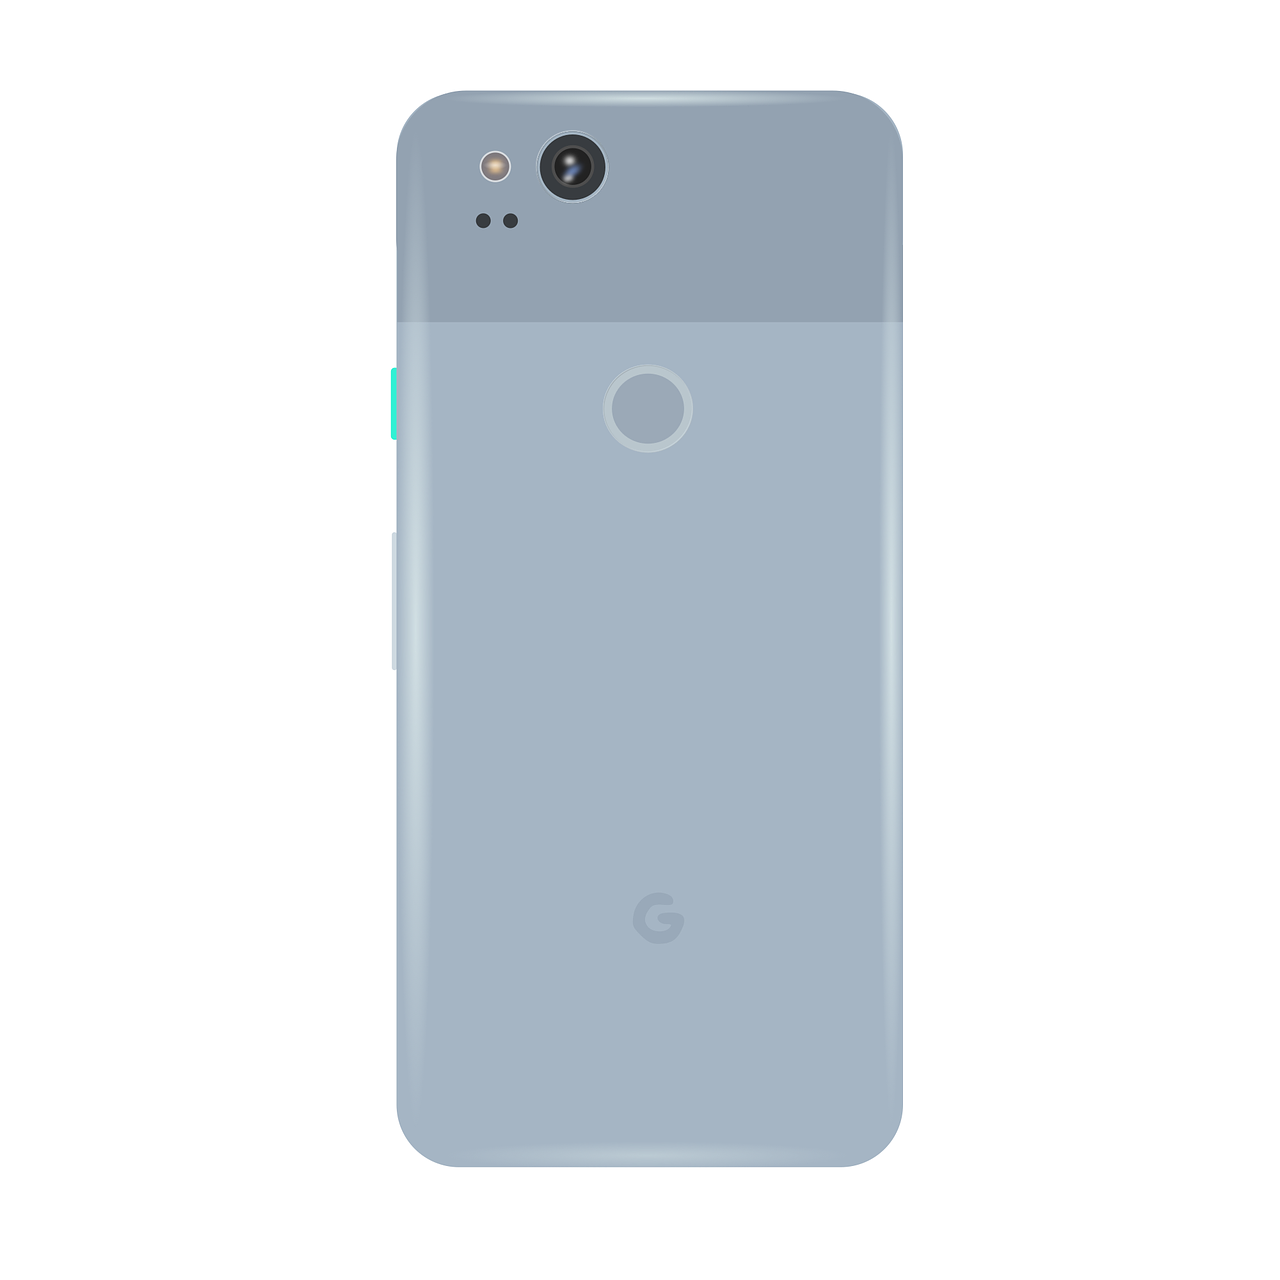 Google is expected to release cheap mobile phones in addition to pixels